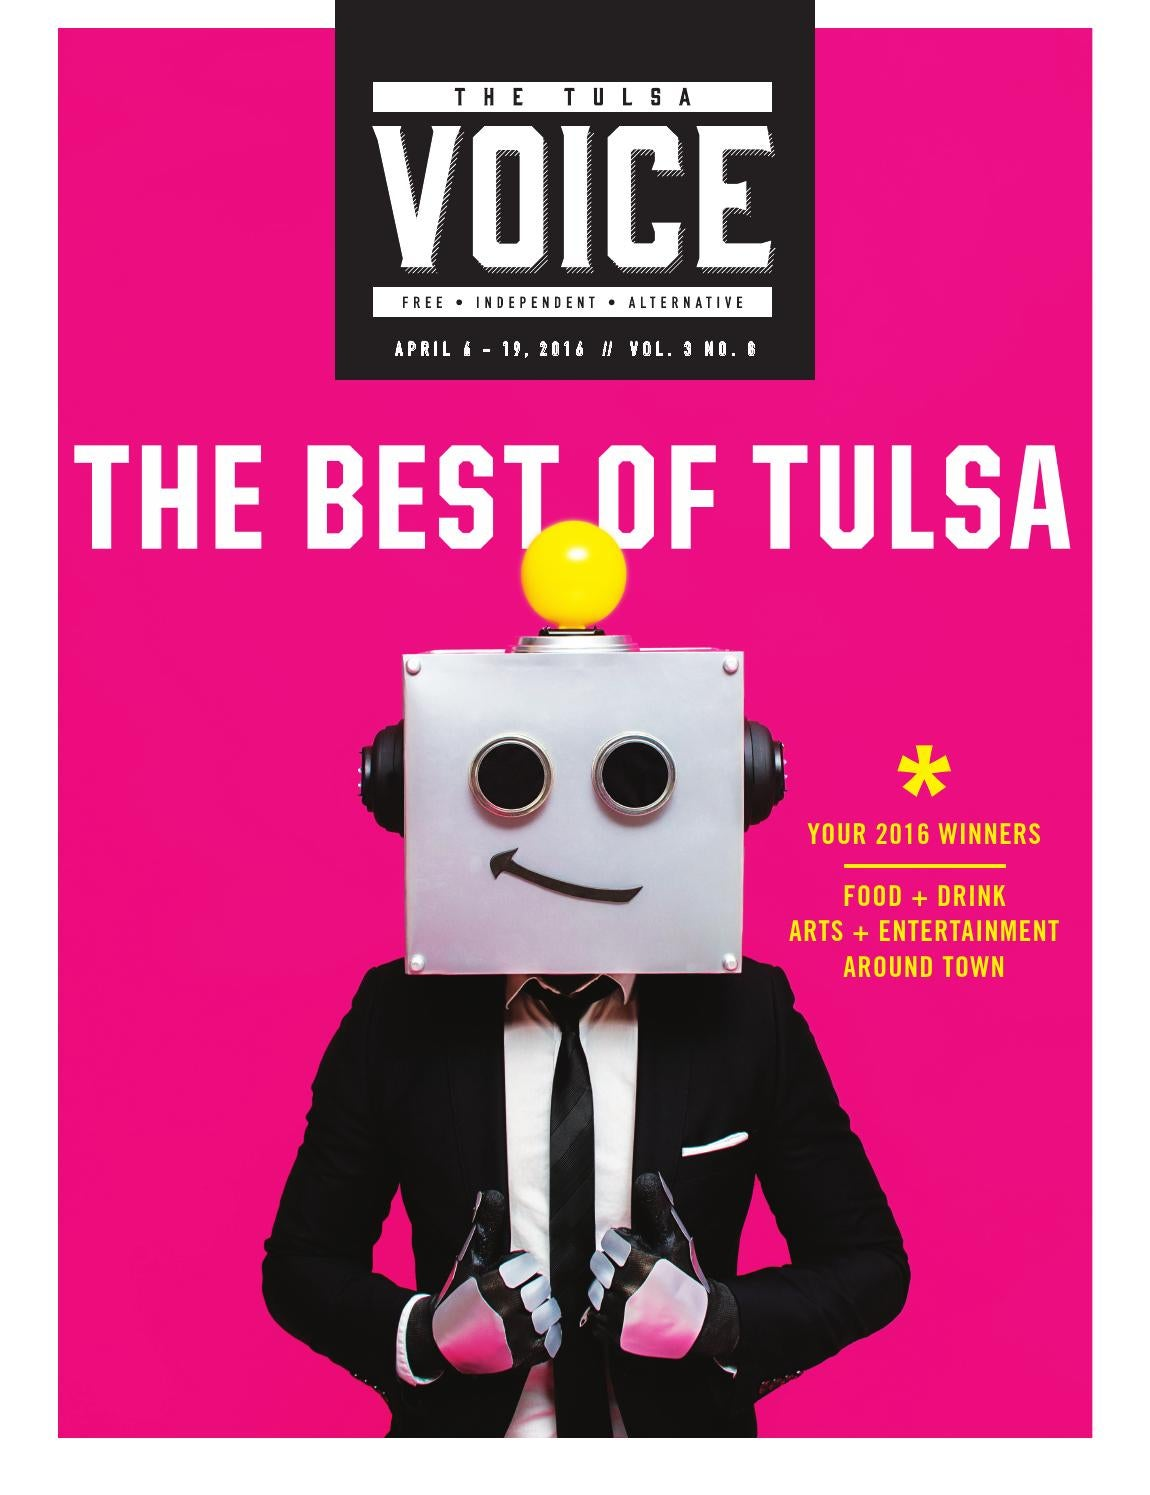 3 No 8 By The Tulsa Voice